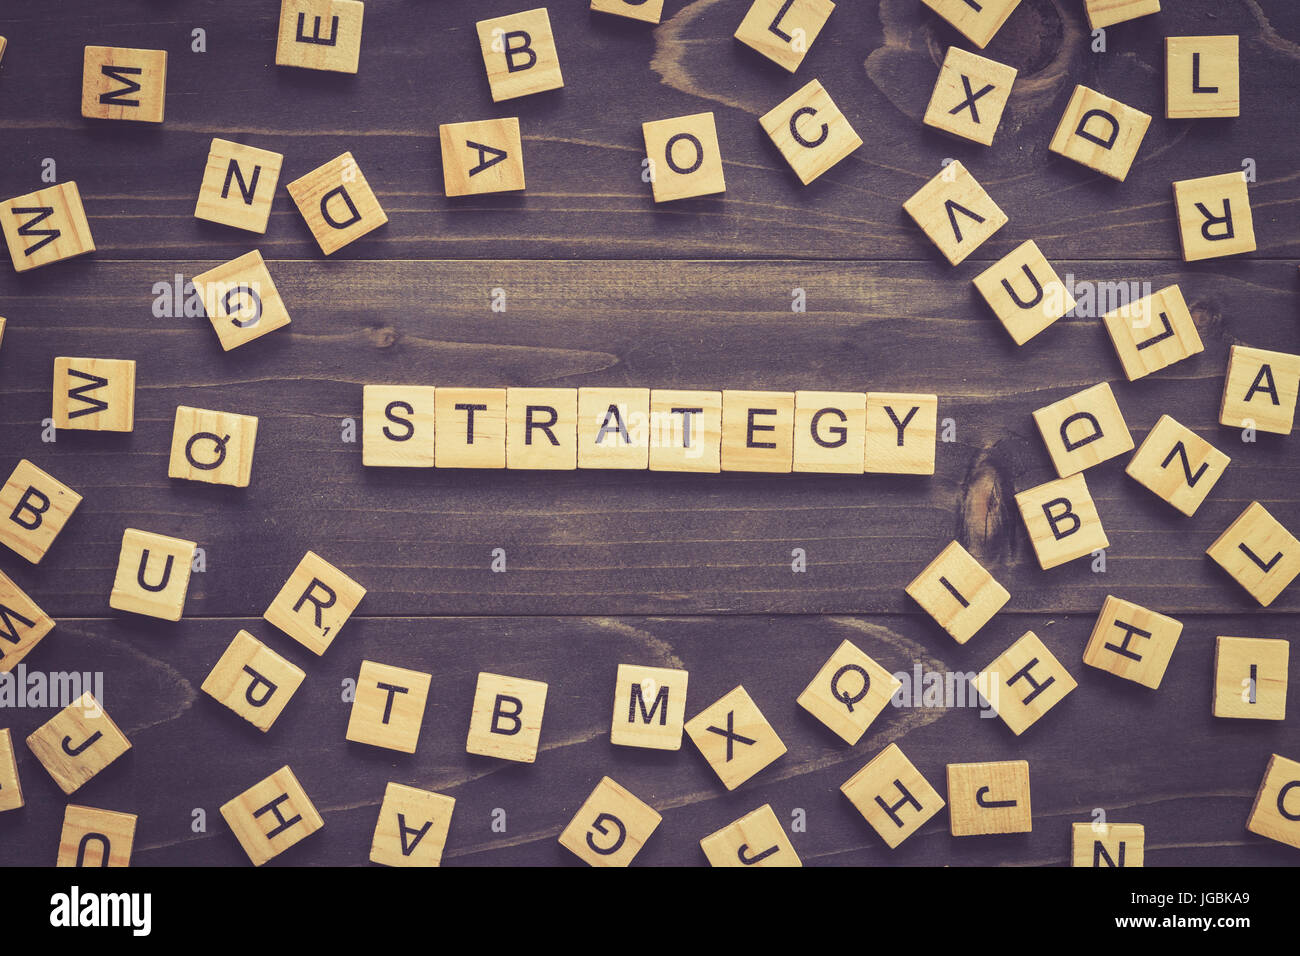 Strategy word wood block on table for business concept. - Stock Image